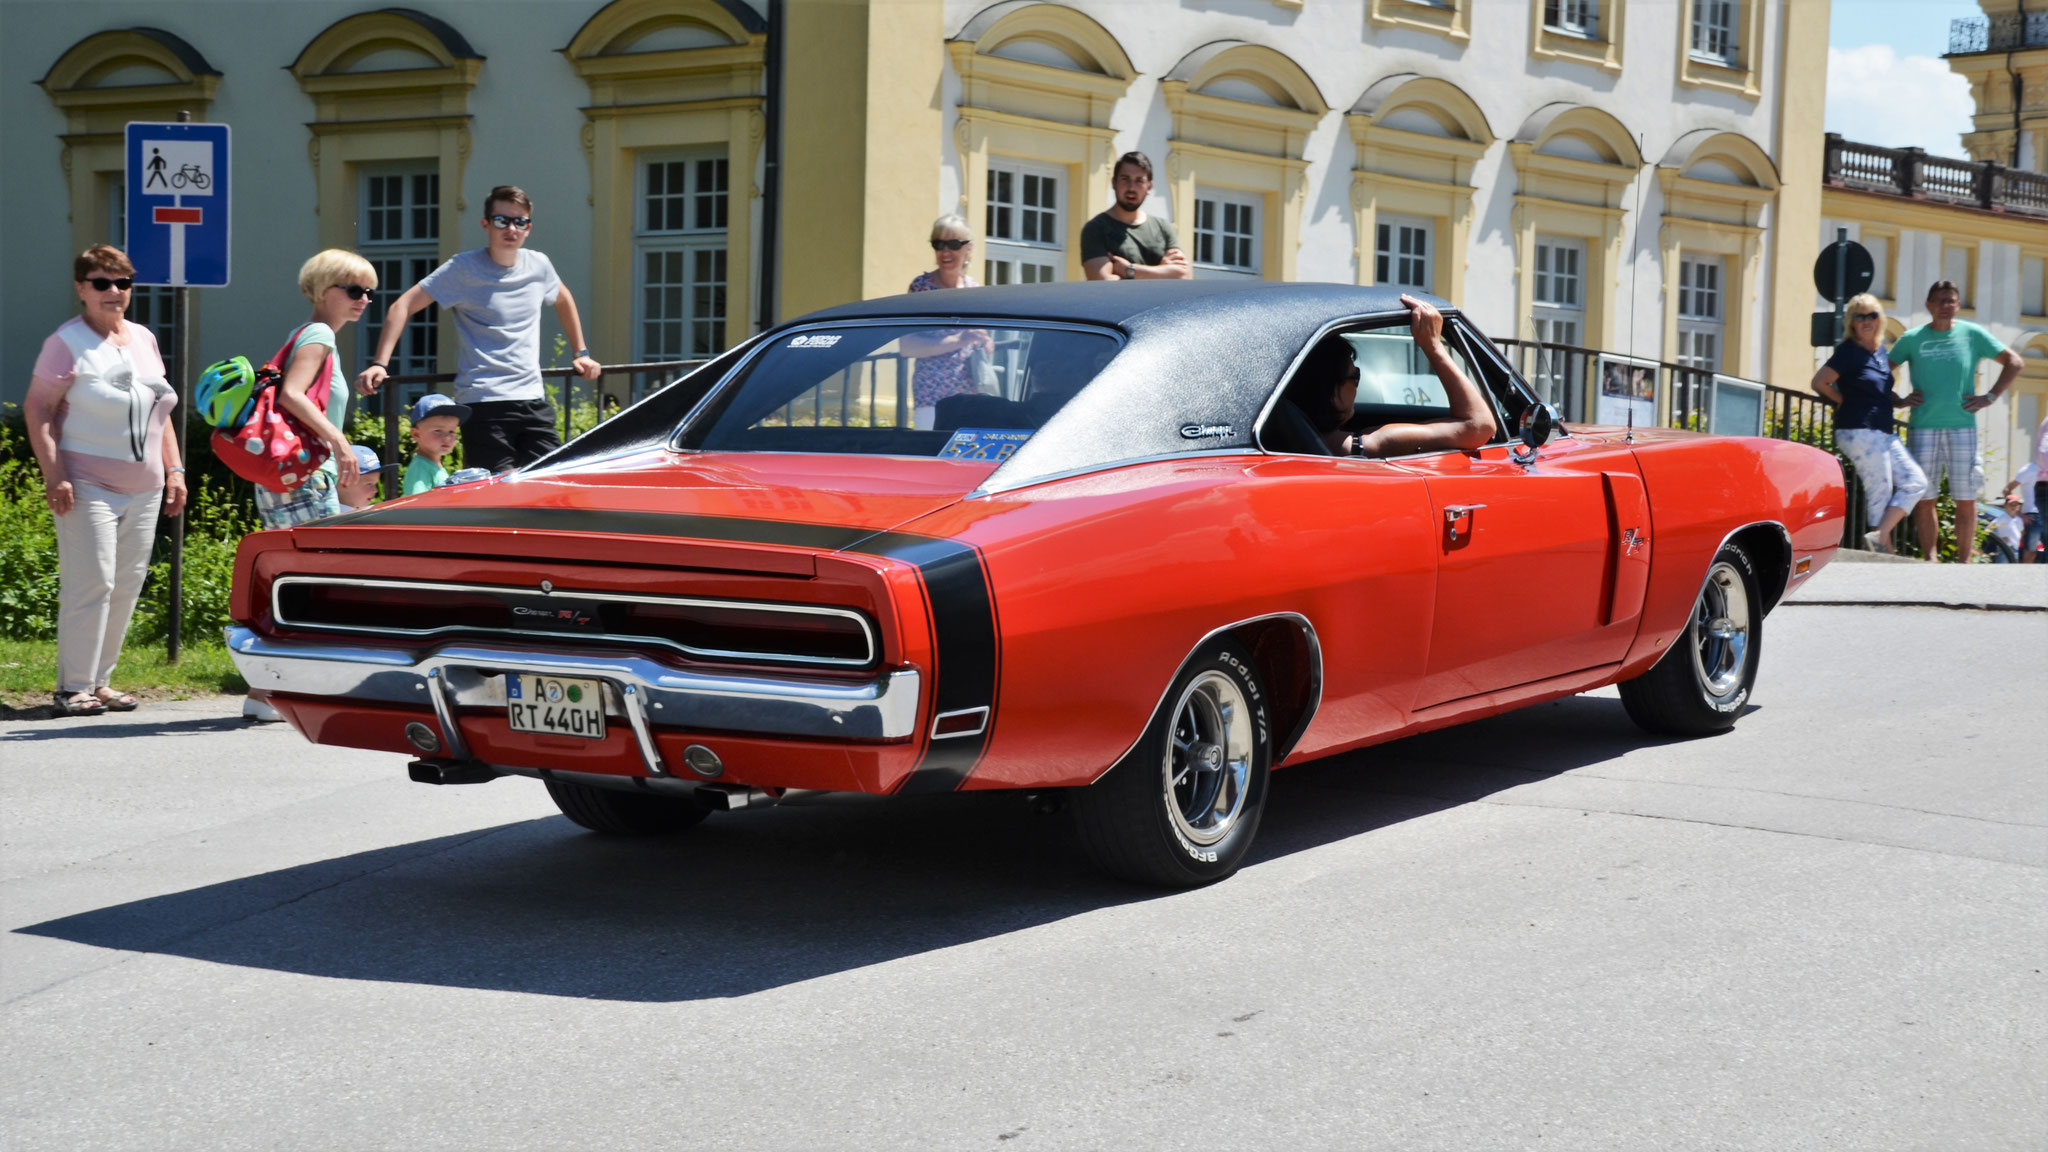 Dodge Charger RT - A-RT-440H